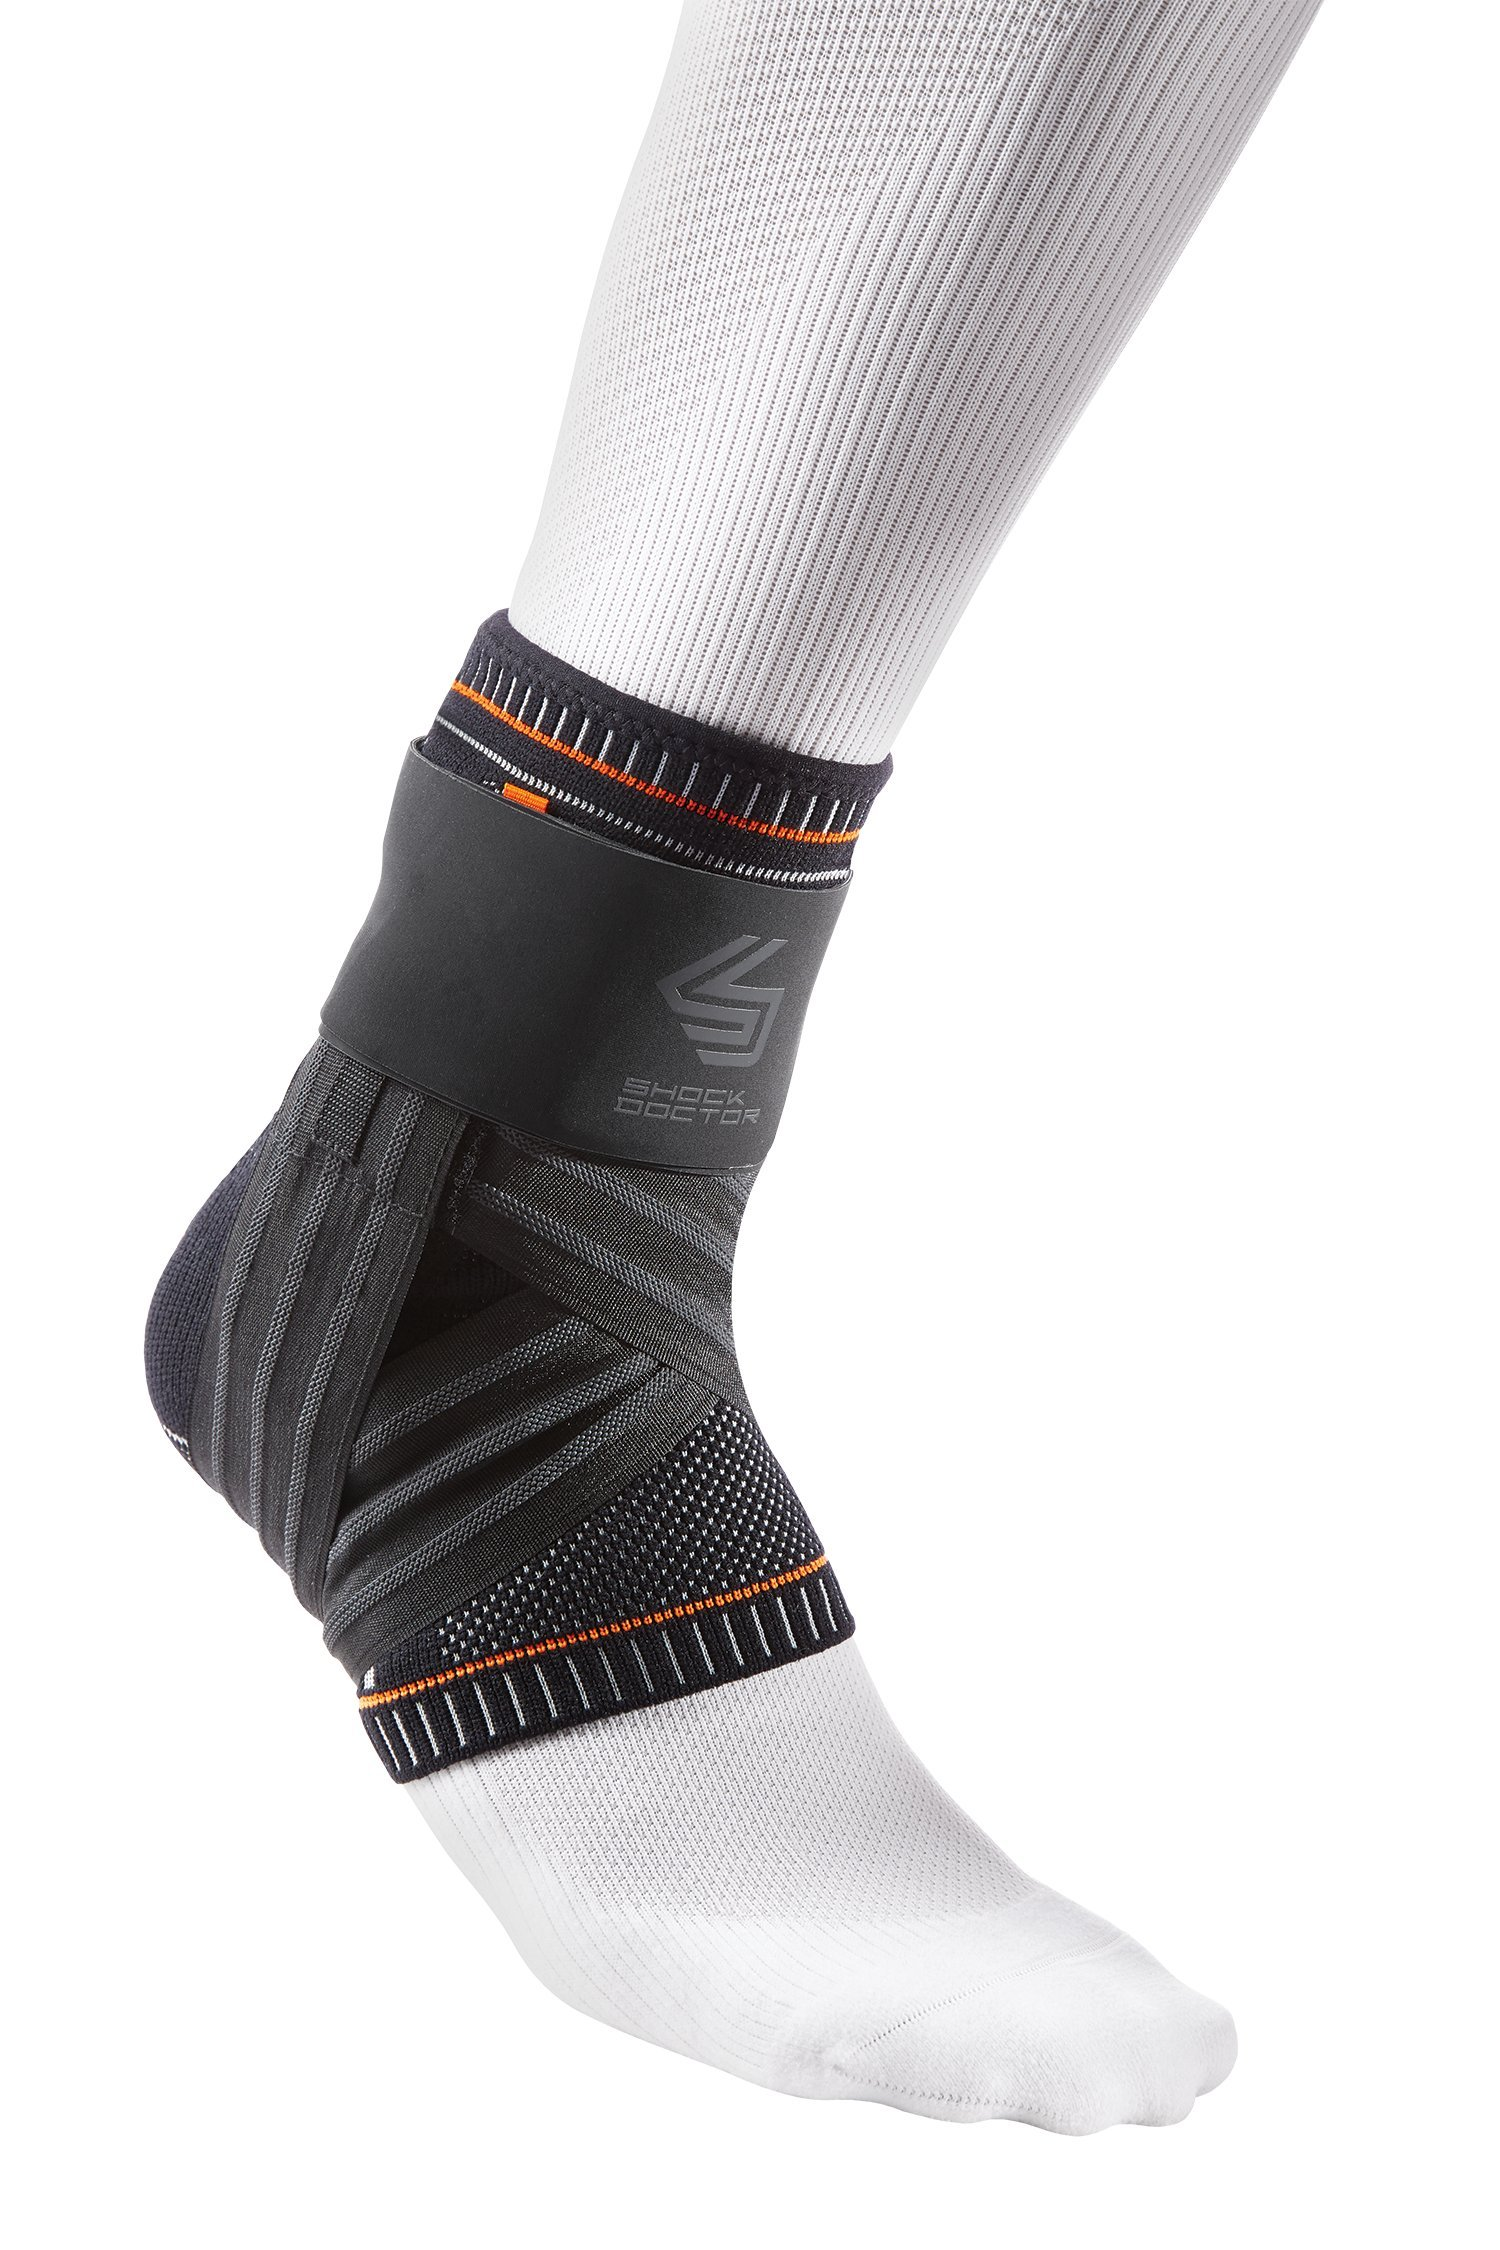 Shock Doctor Ultra Knit Ankle Brace W/Figure 6 Strap & Stays Black, Small